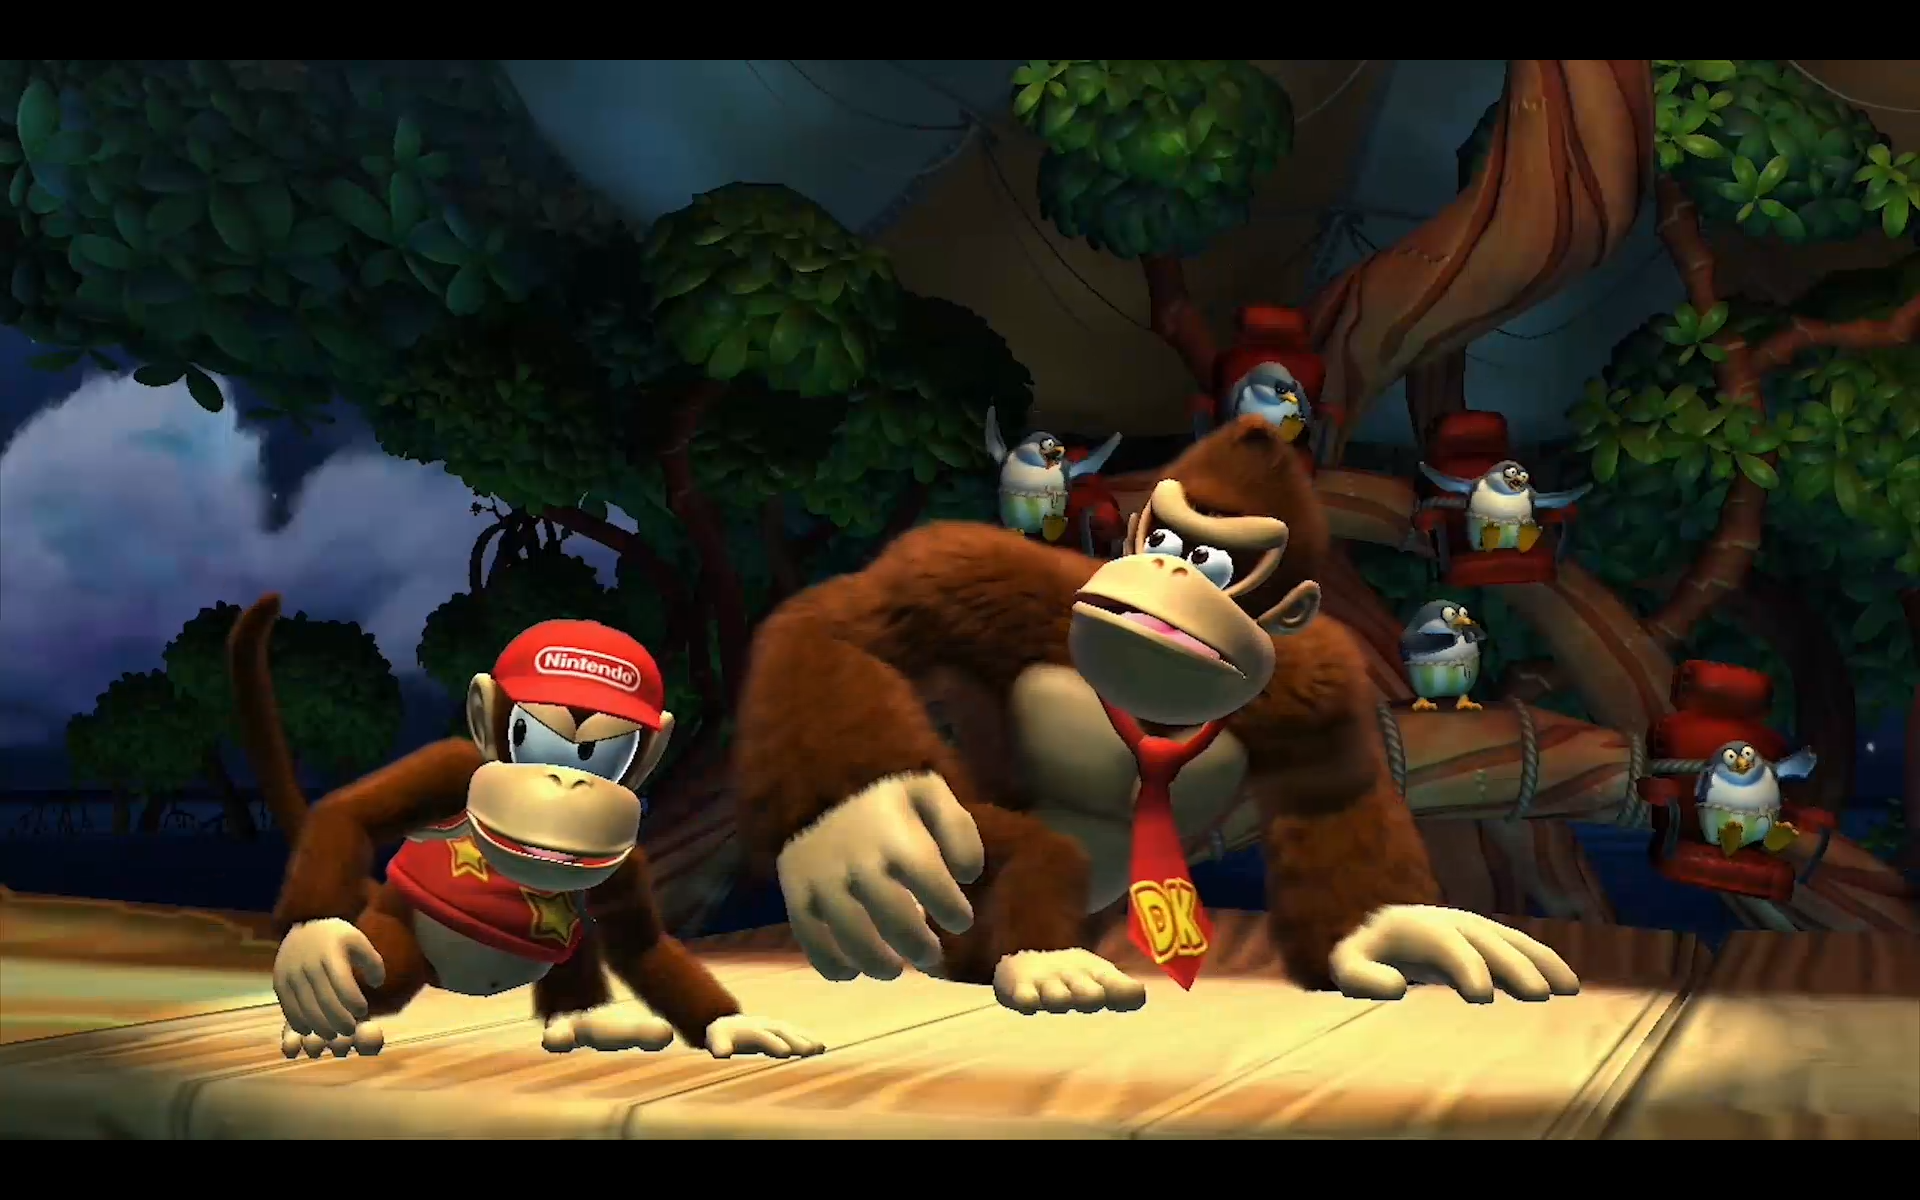 Donkey kong country tropical freeze ba boom - photo#21